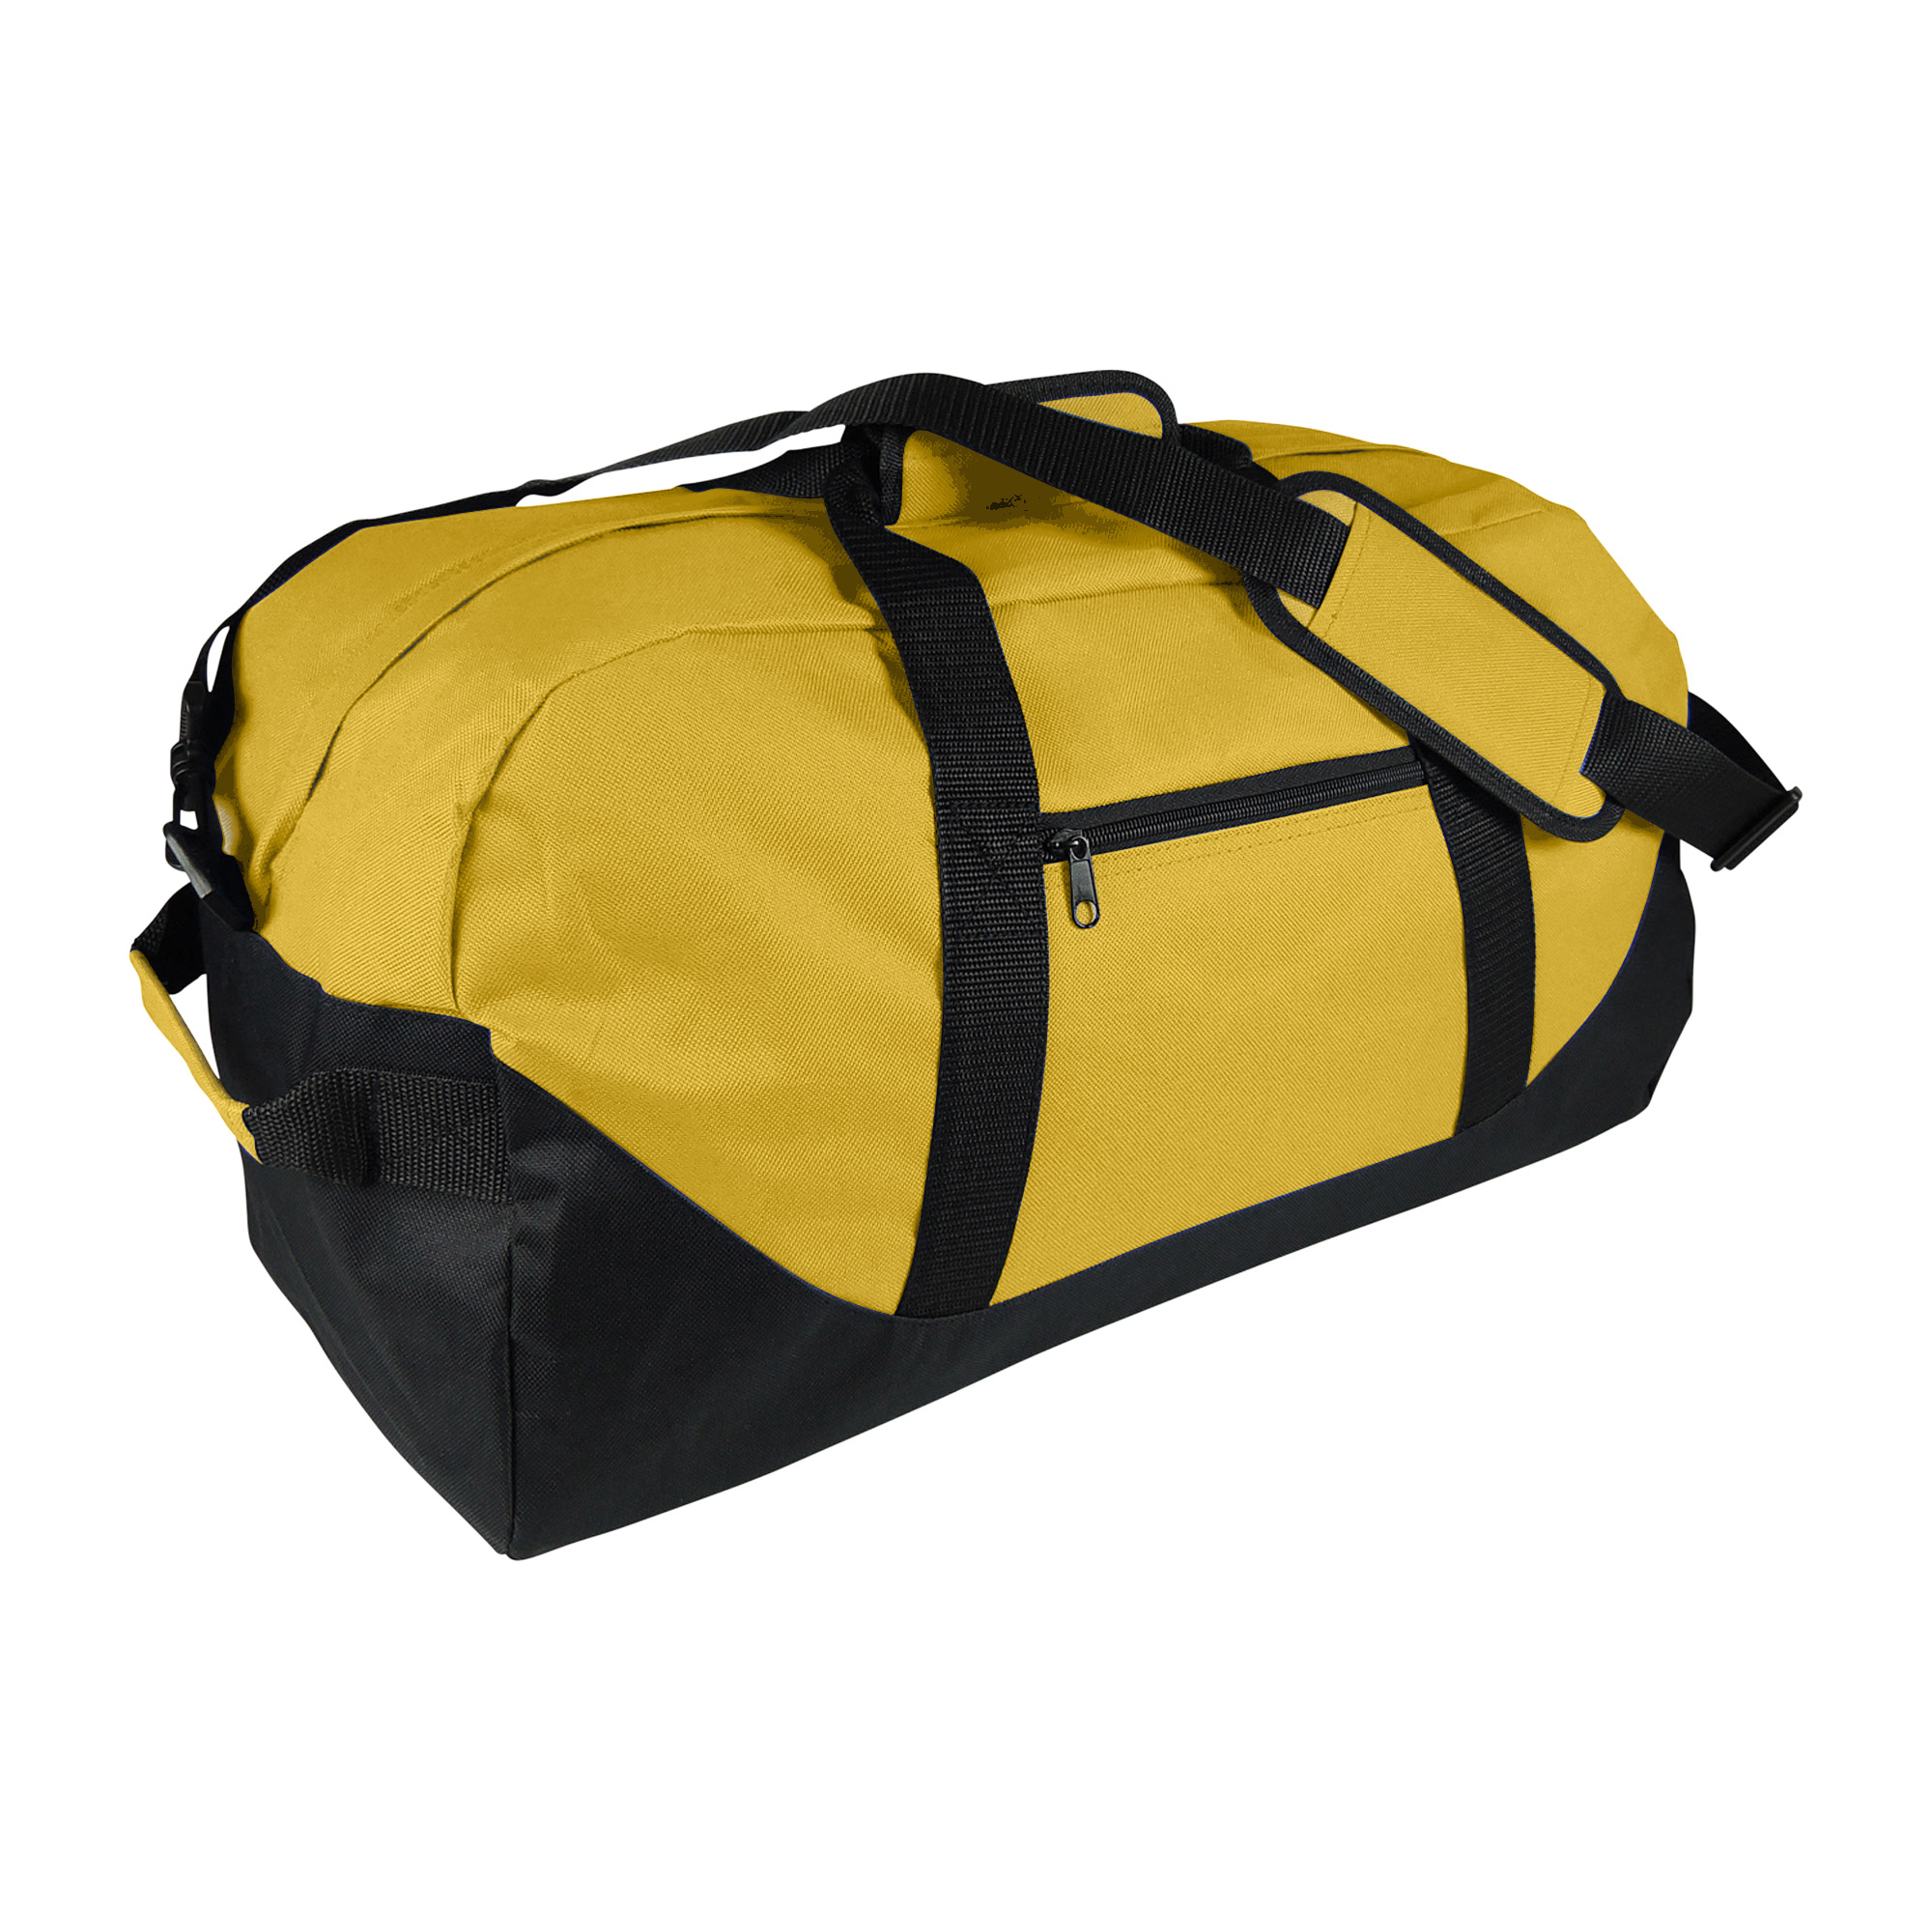 21 Large Duffle Bag with Adjustable Strap in Black